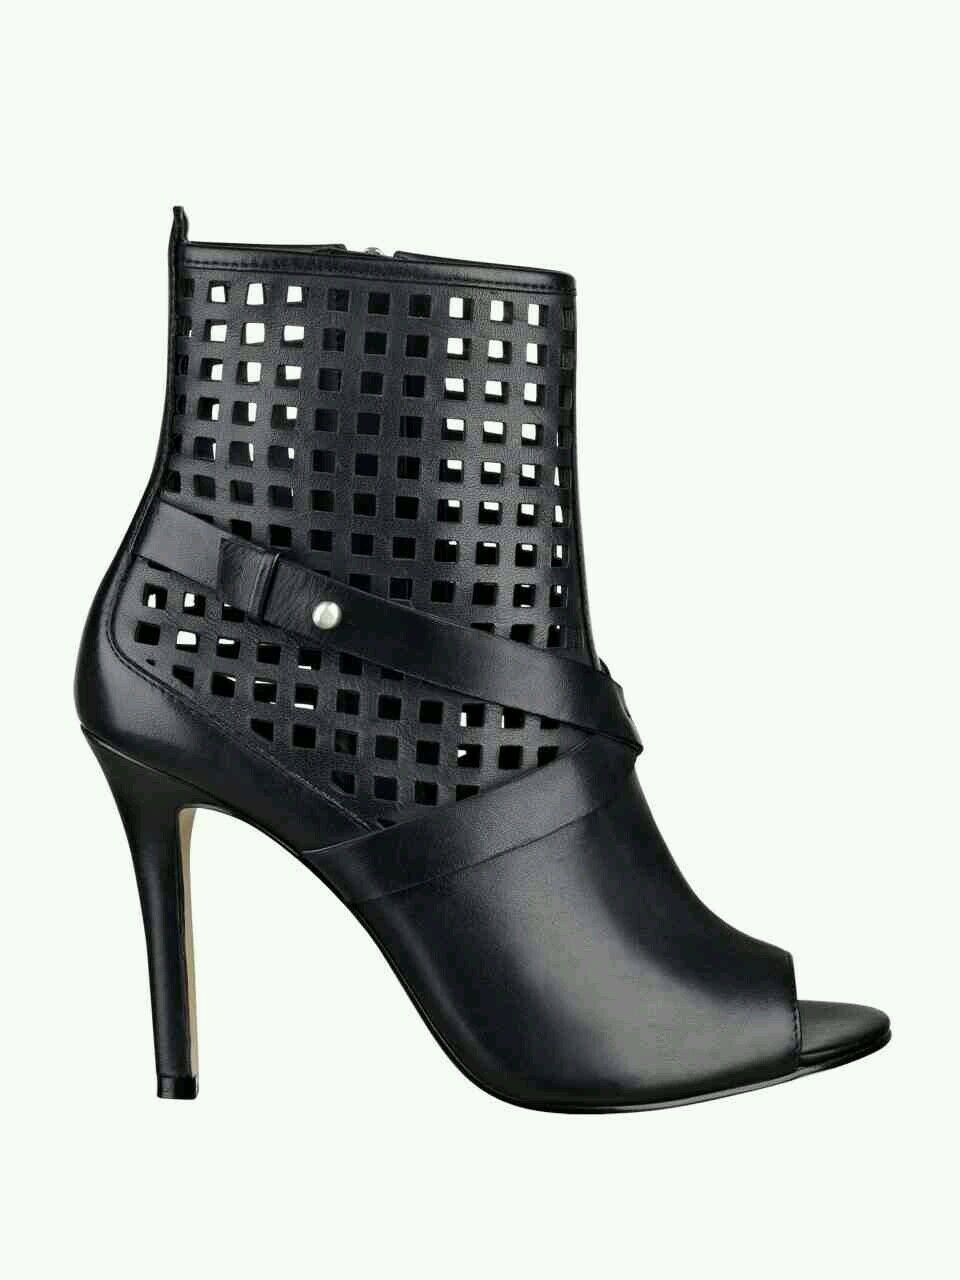 GUESS OPEN TOE PERFORATED démarrageIES noir LEATHER Taille 5.5